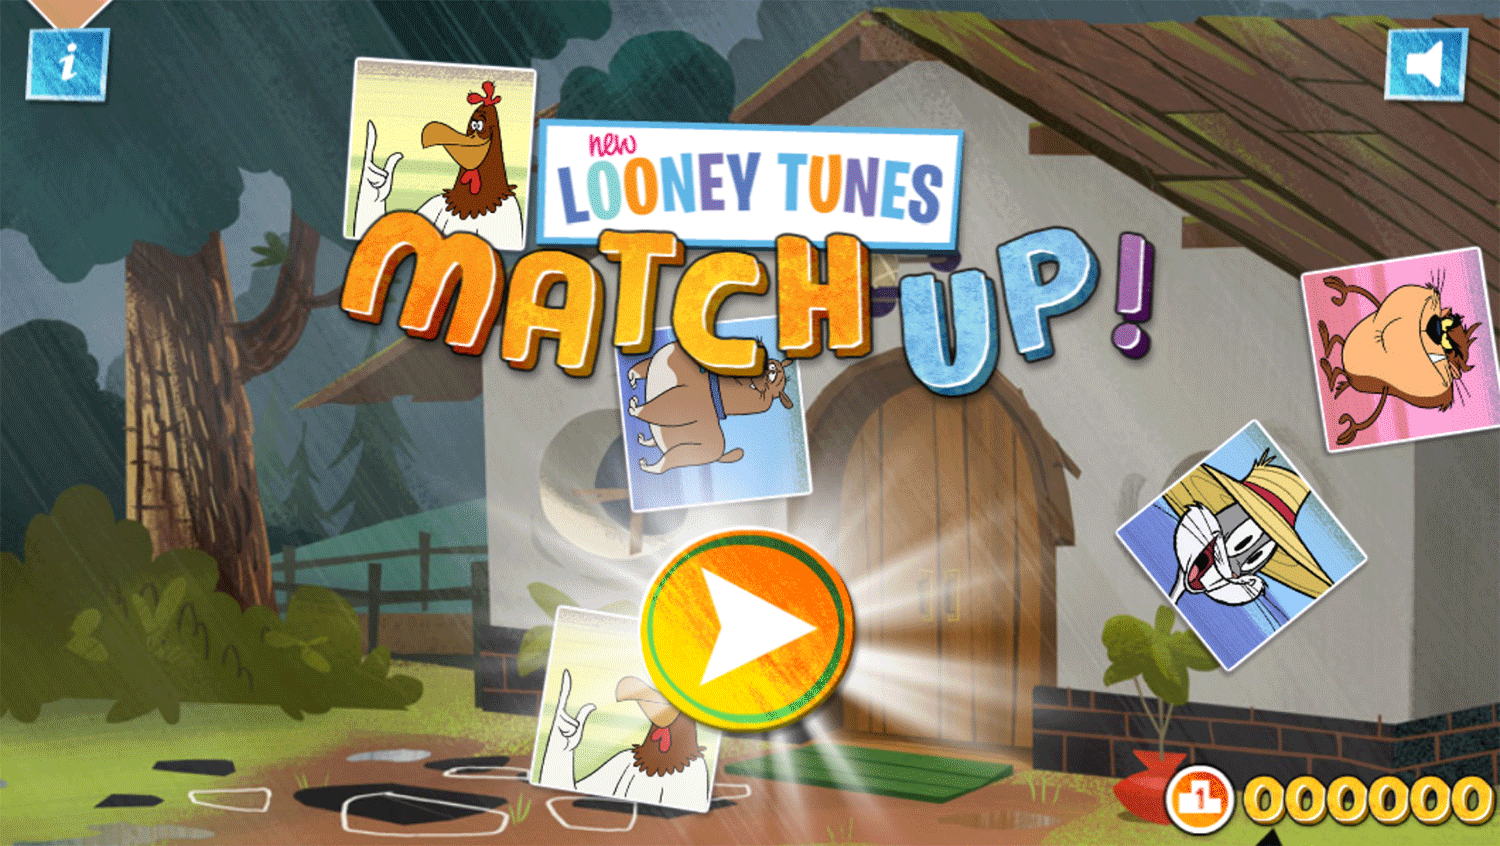 New Looney Tunes Match Up Game Welcome Screen Screenshot.